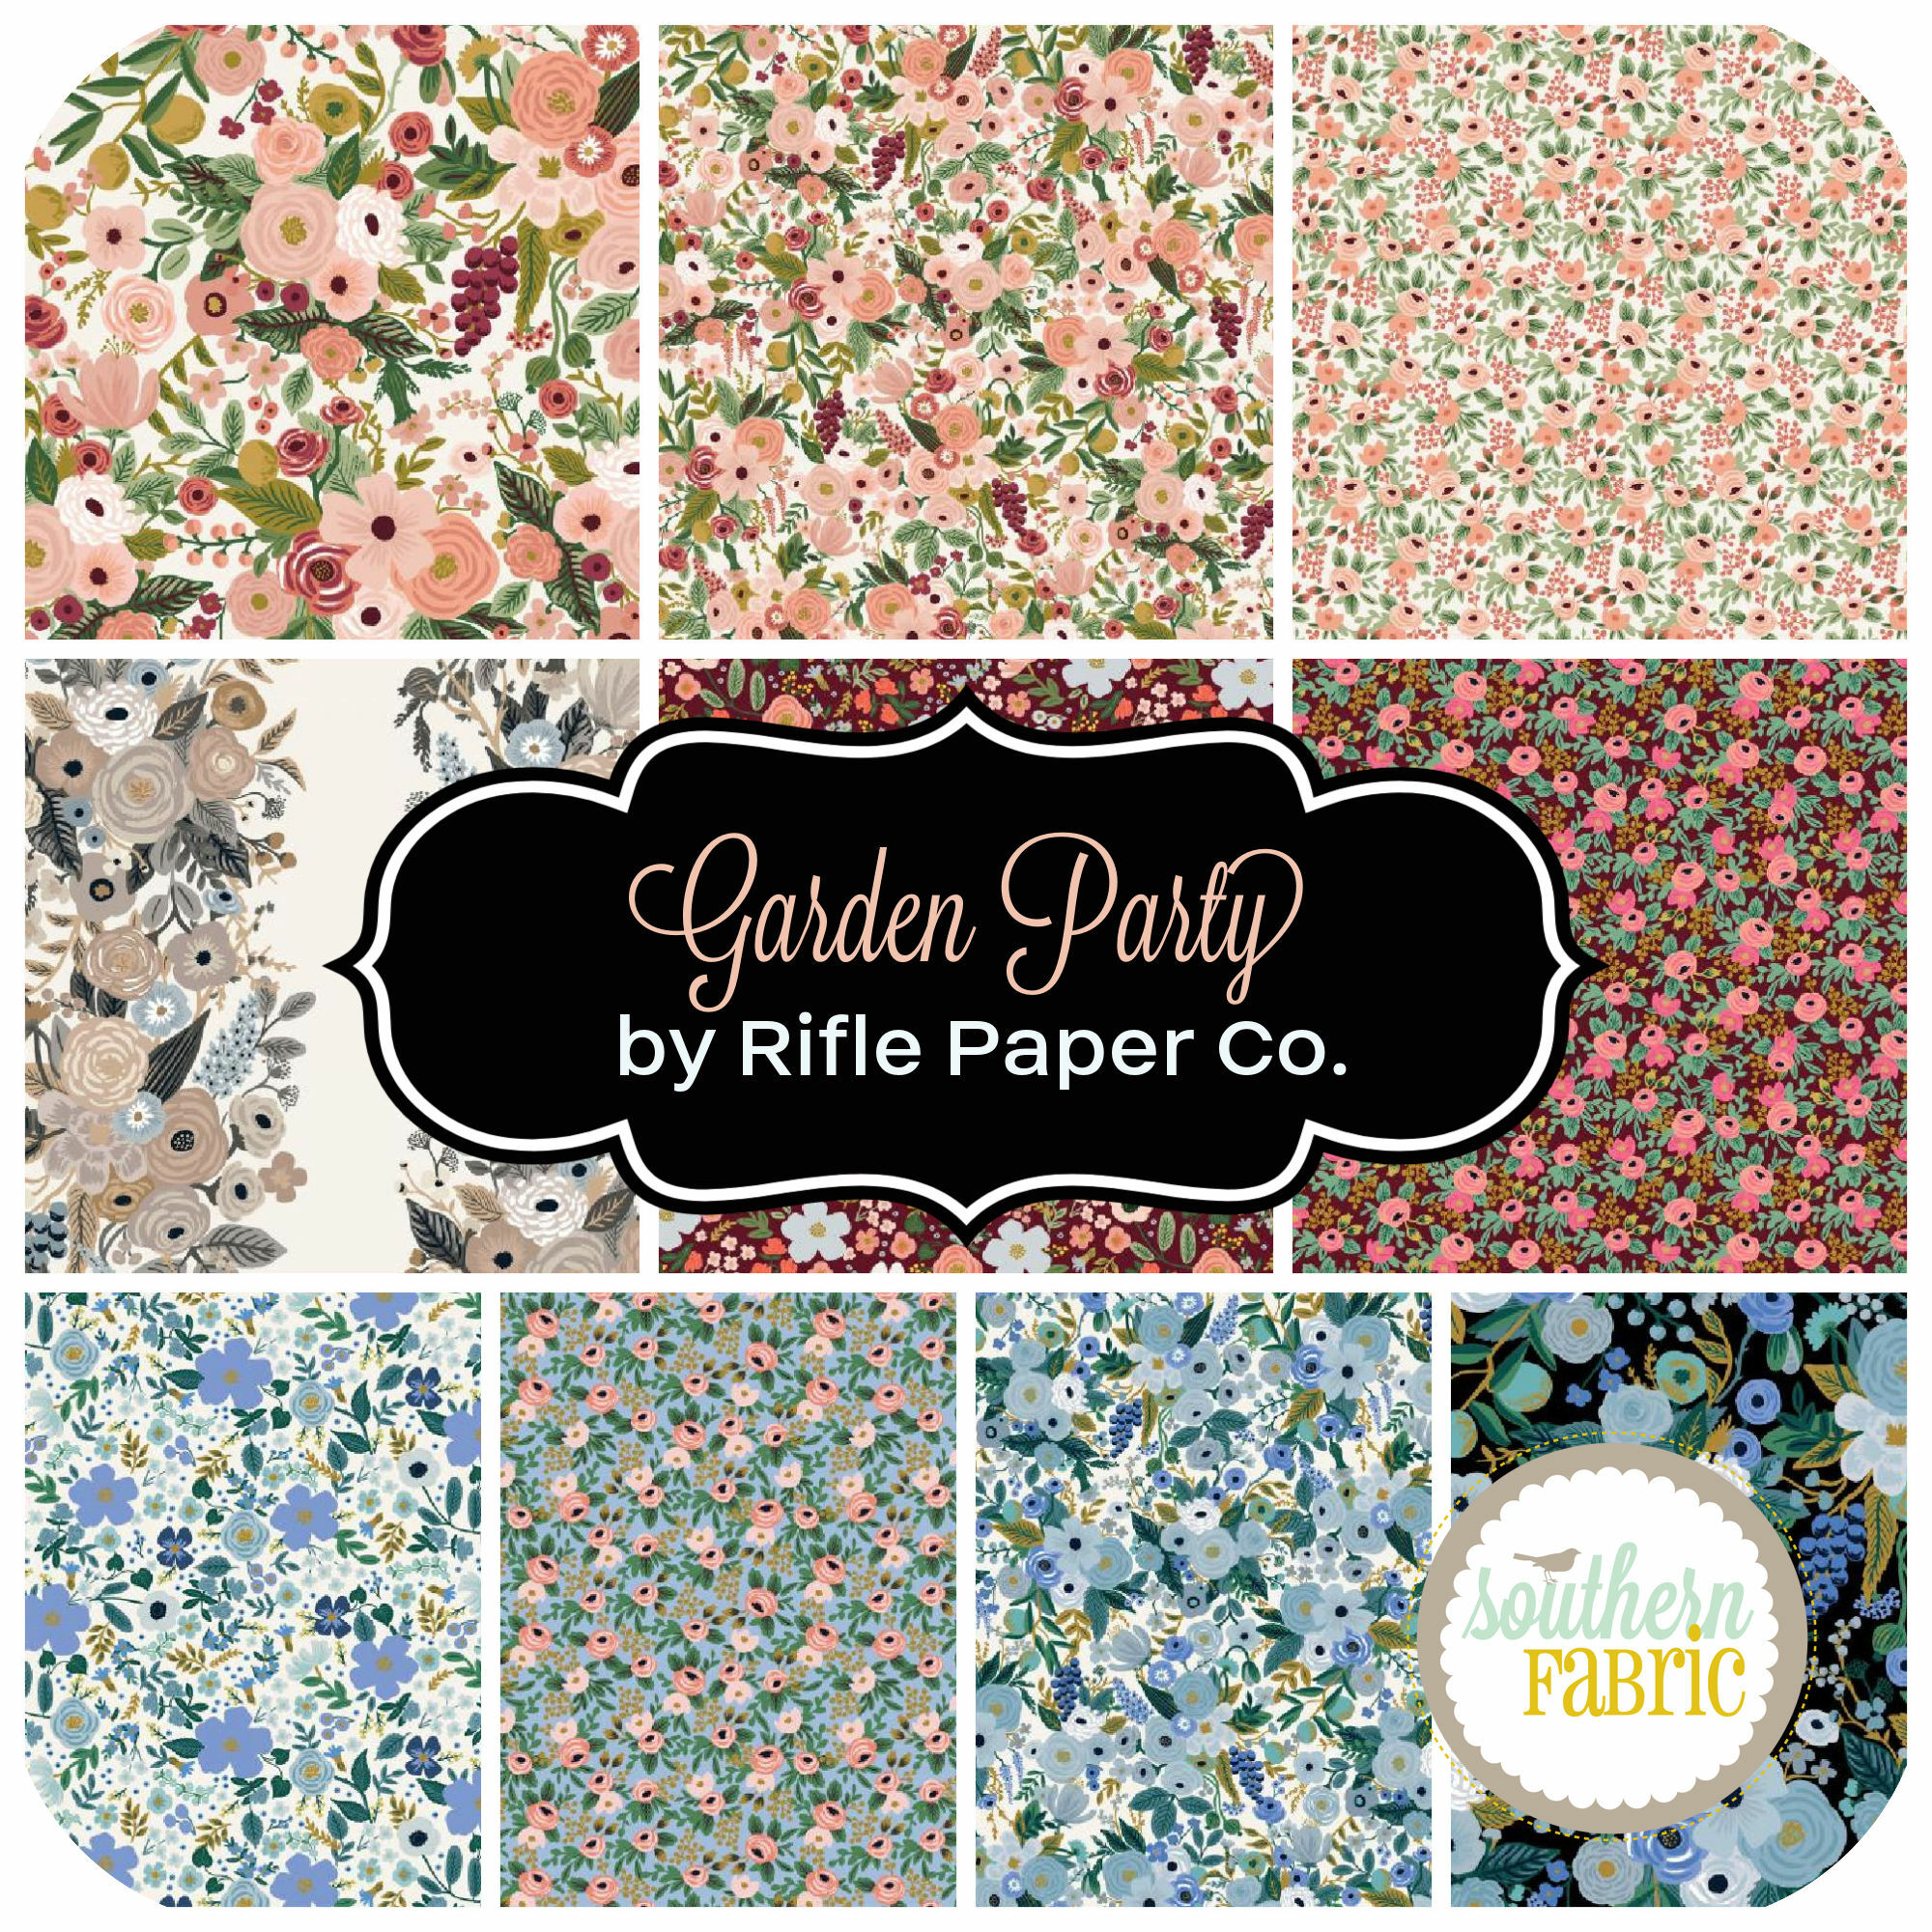 Garden Pary by Rifle Paper Co.